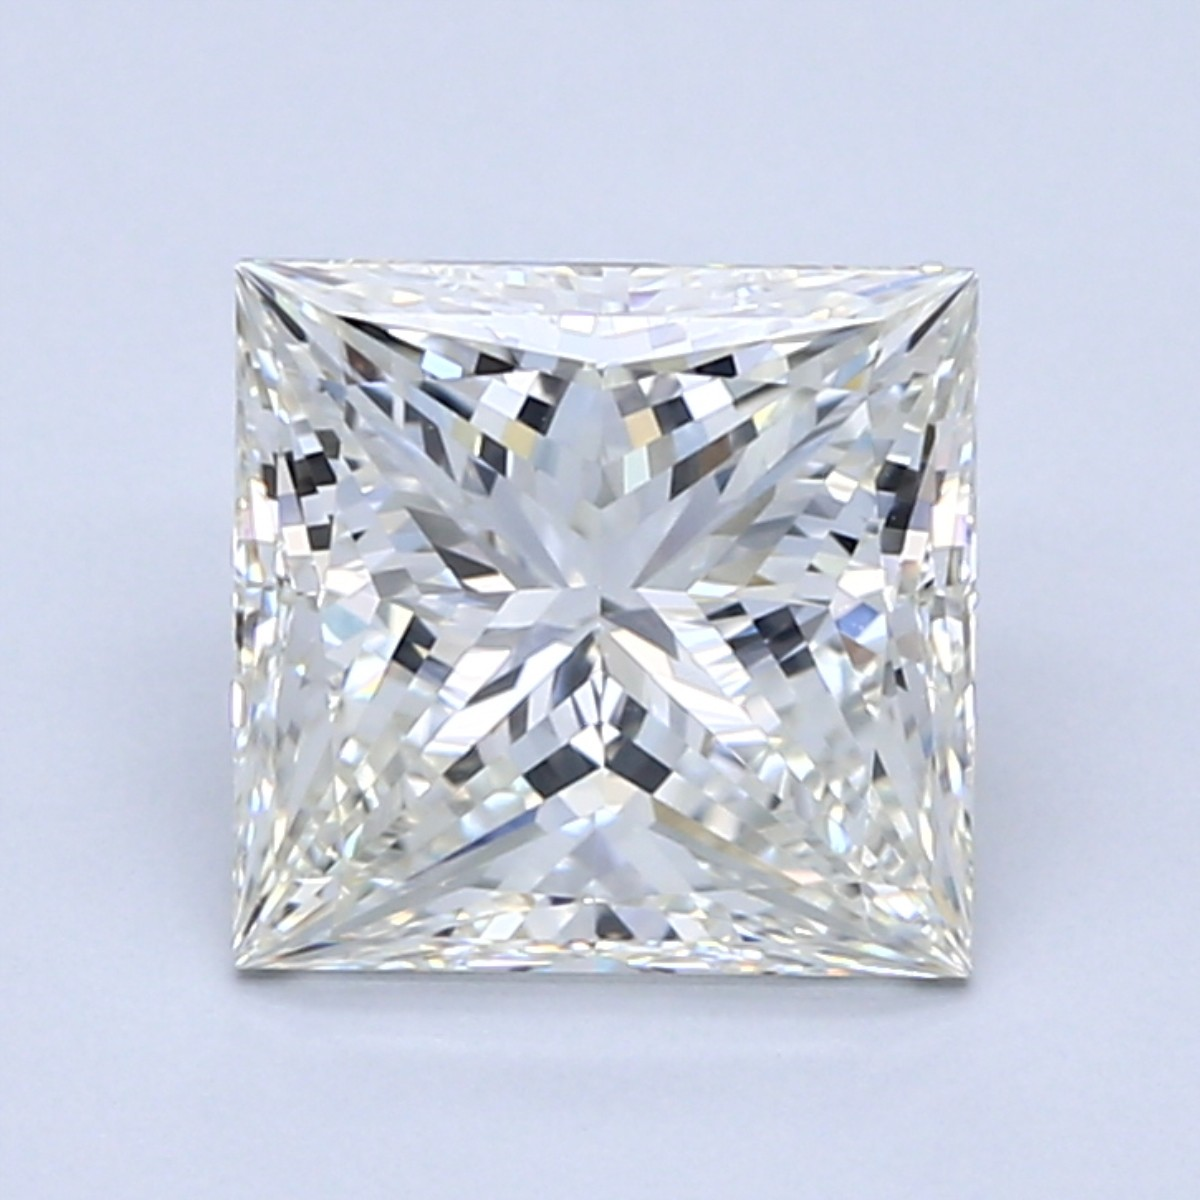 2.5 carat J color princess cut diamond